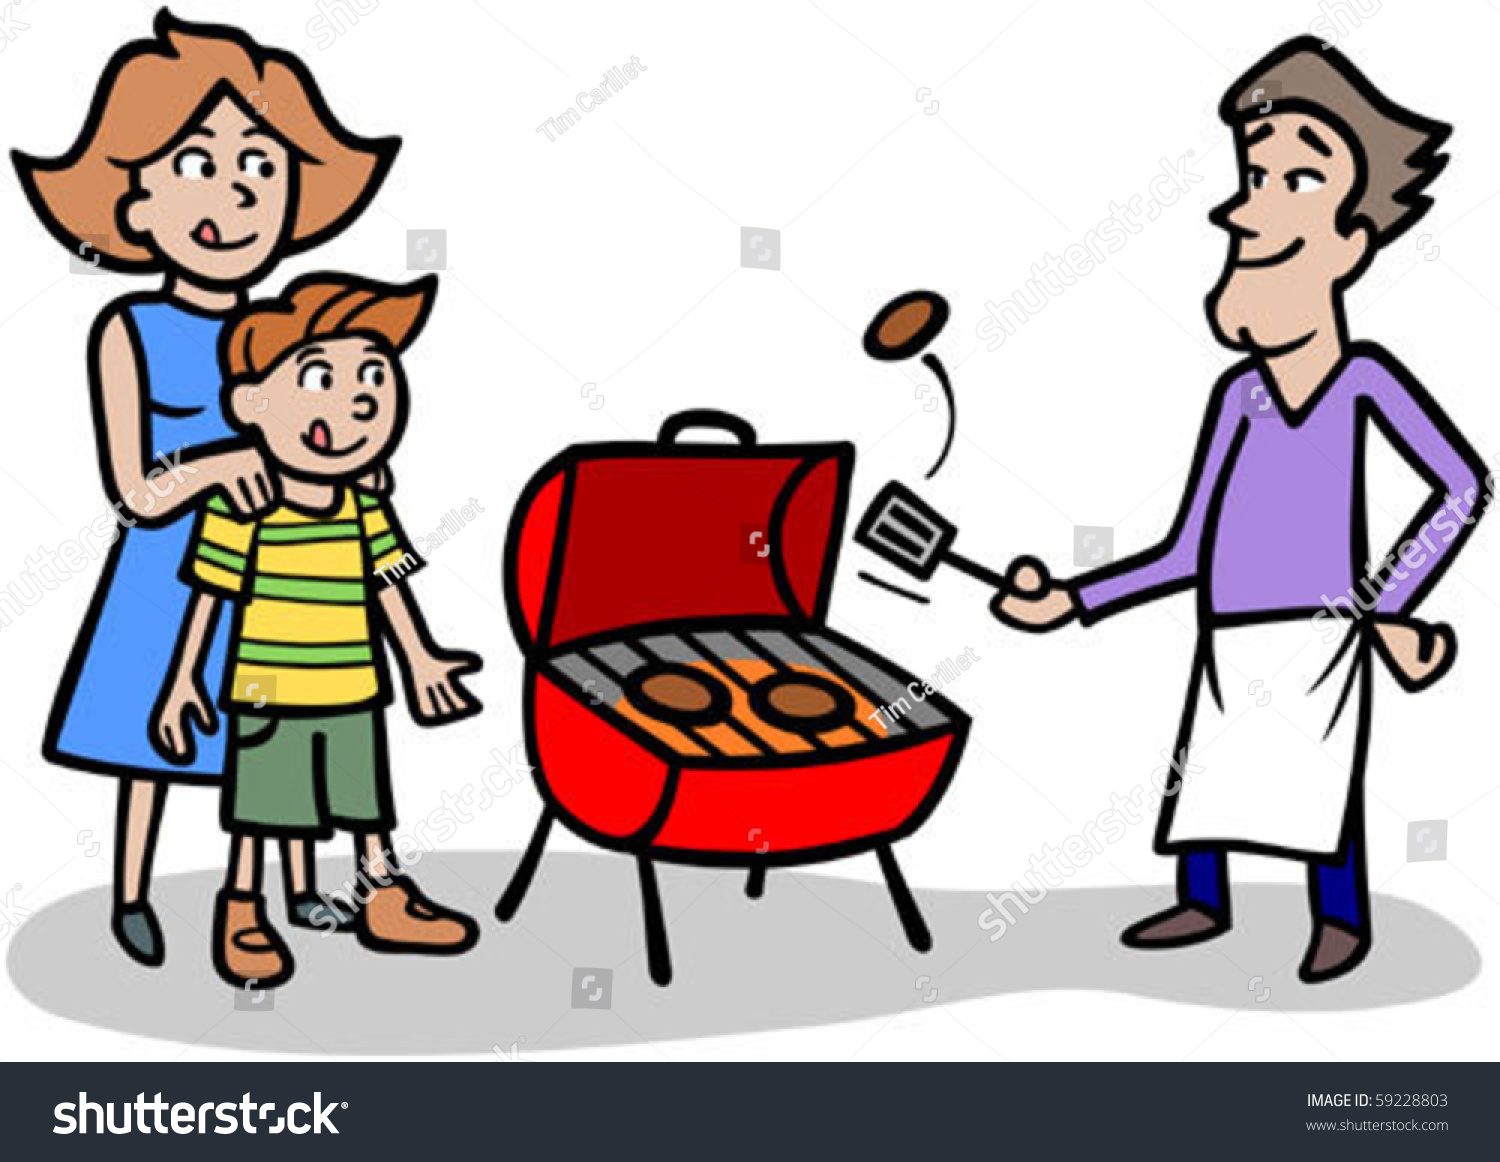 free clipart man grilling - photo #50